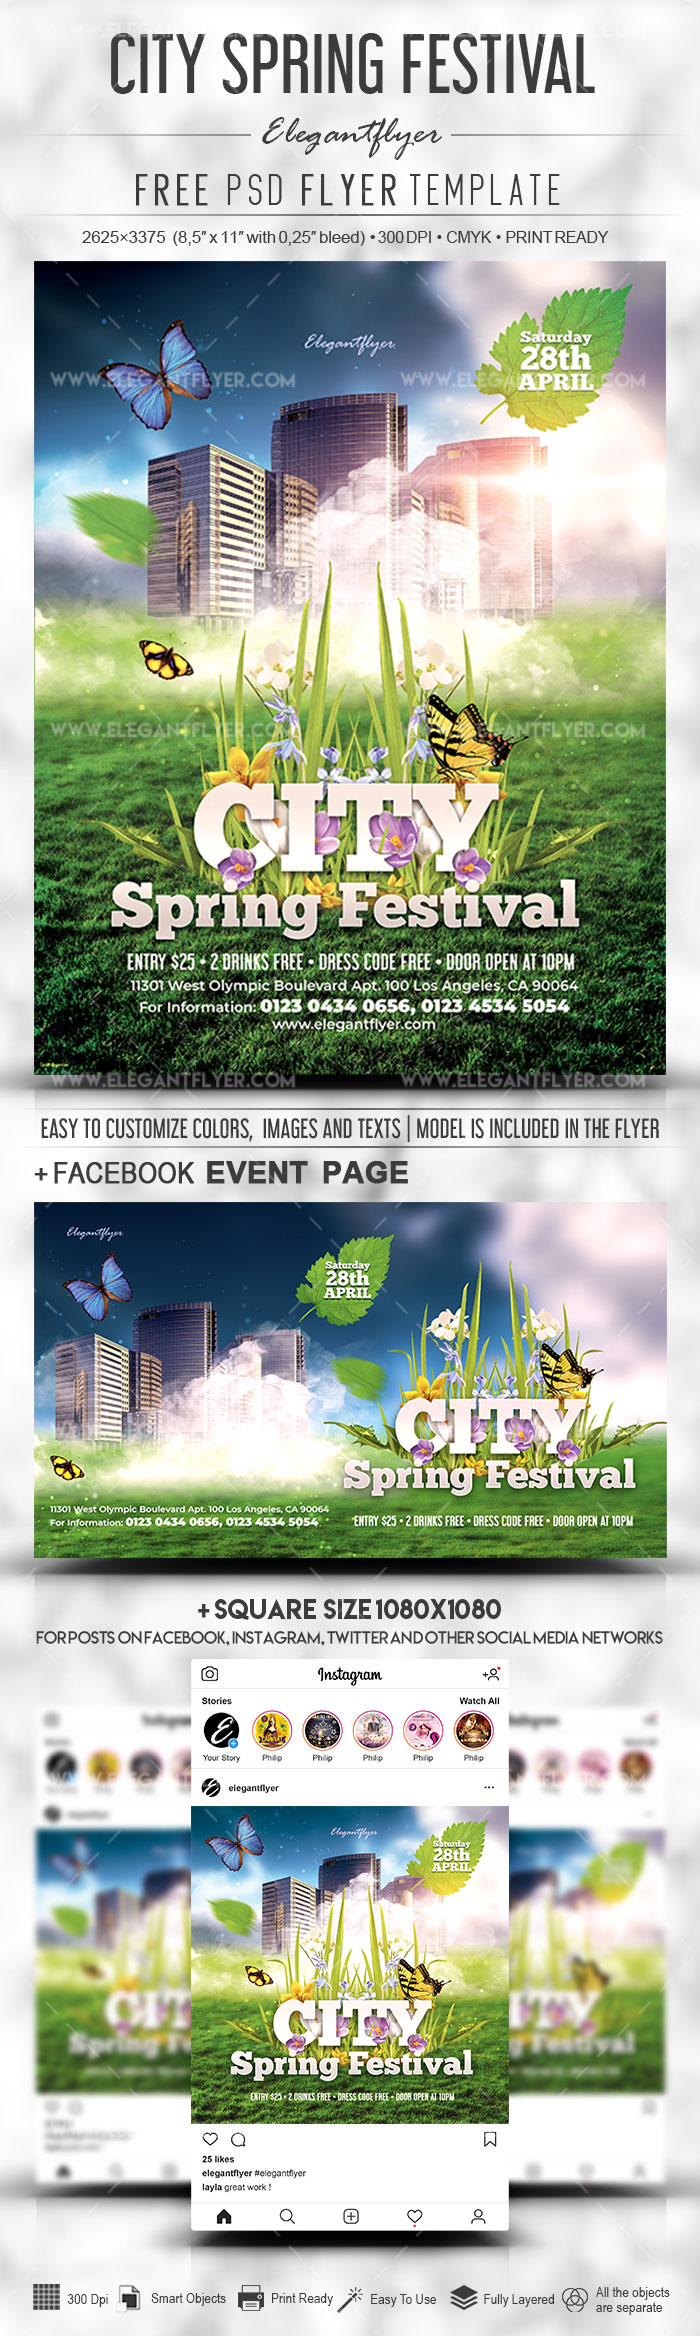 City Spring Festival – Free PSD Flyer Template + Facebook Cover + Instagram Post